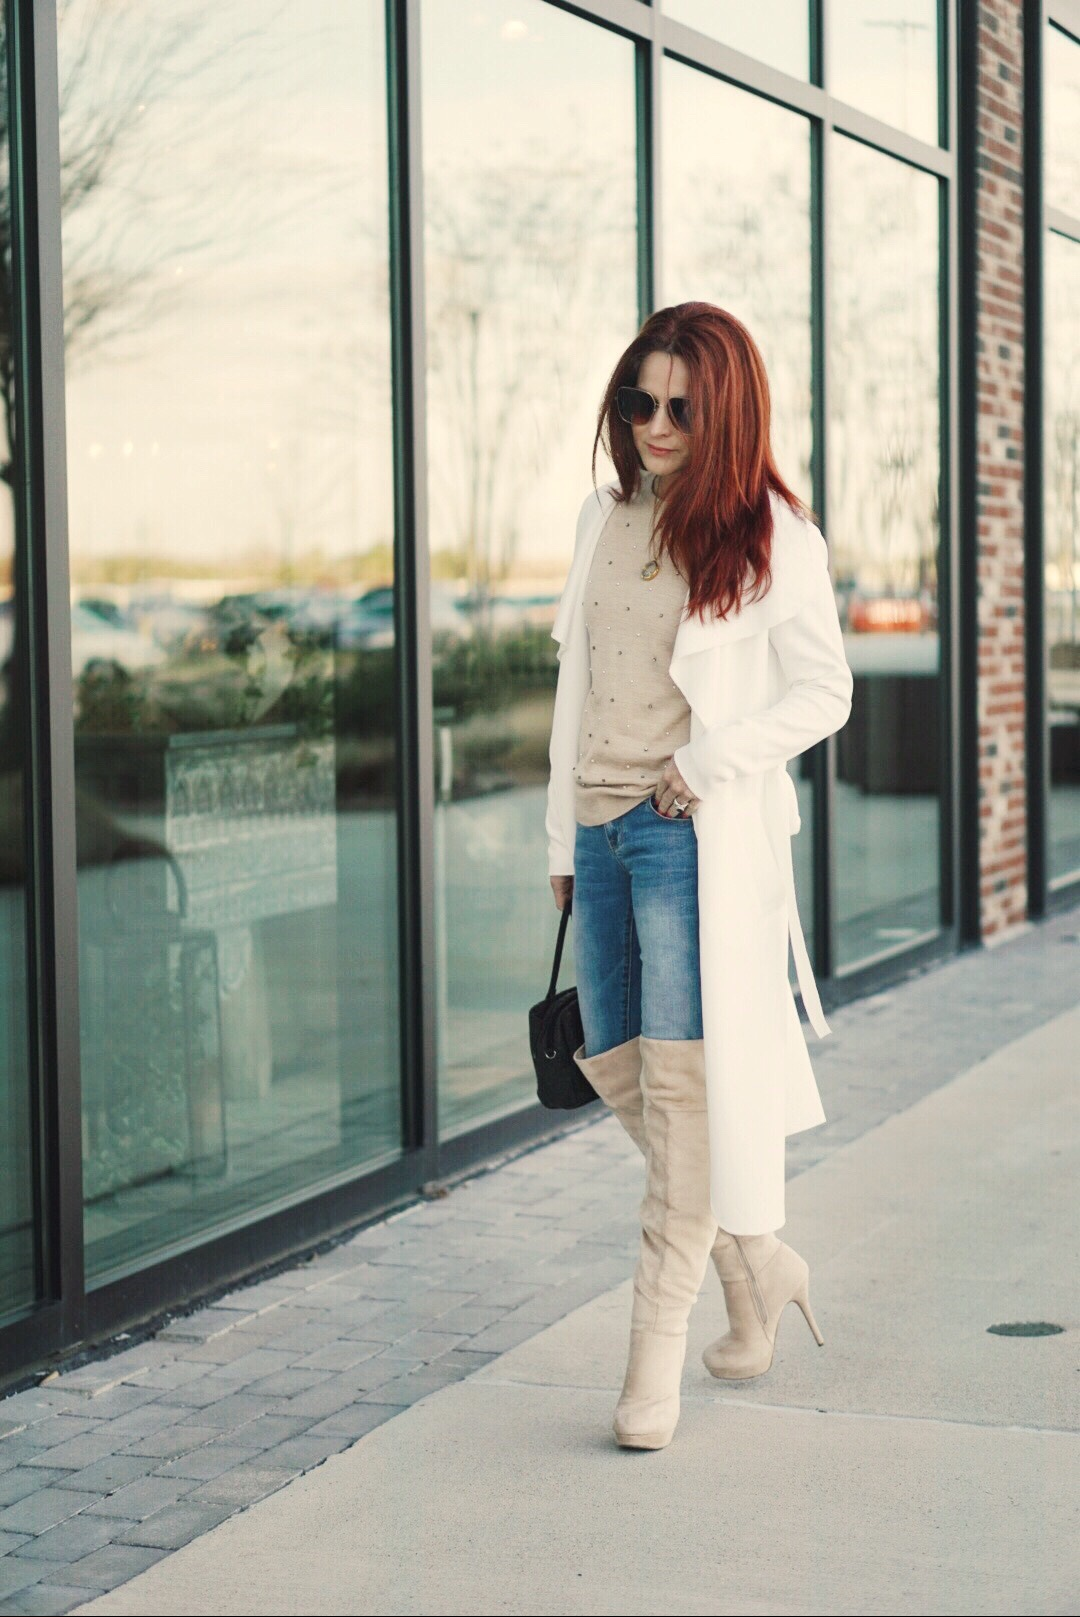 suede boots, cream over the knee boot outfits, blush embellished sweaters, duster coat outfit ideas